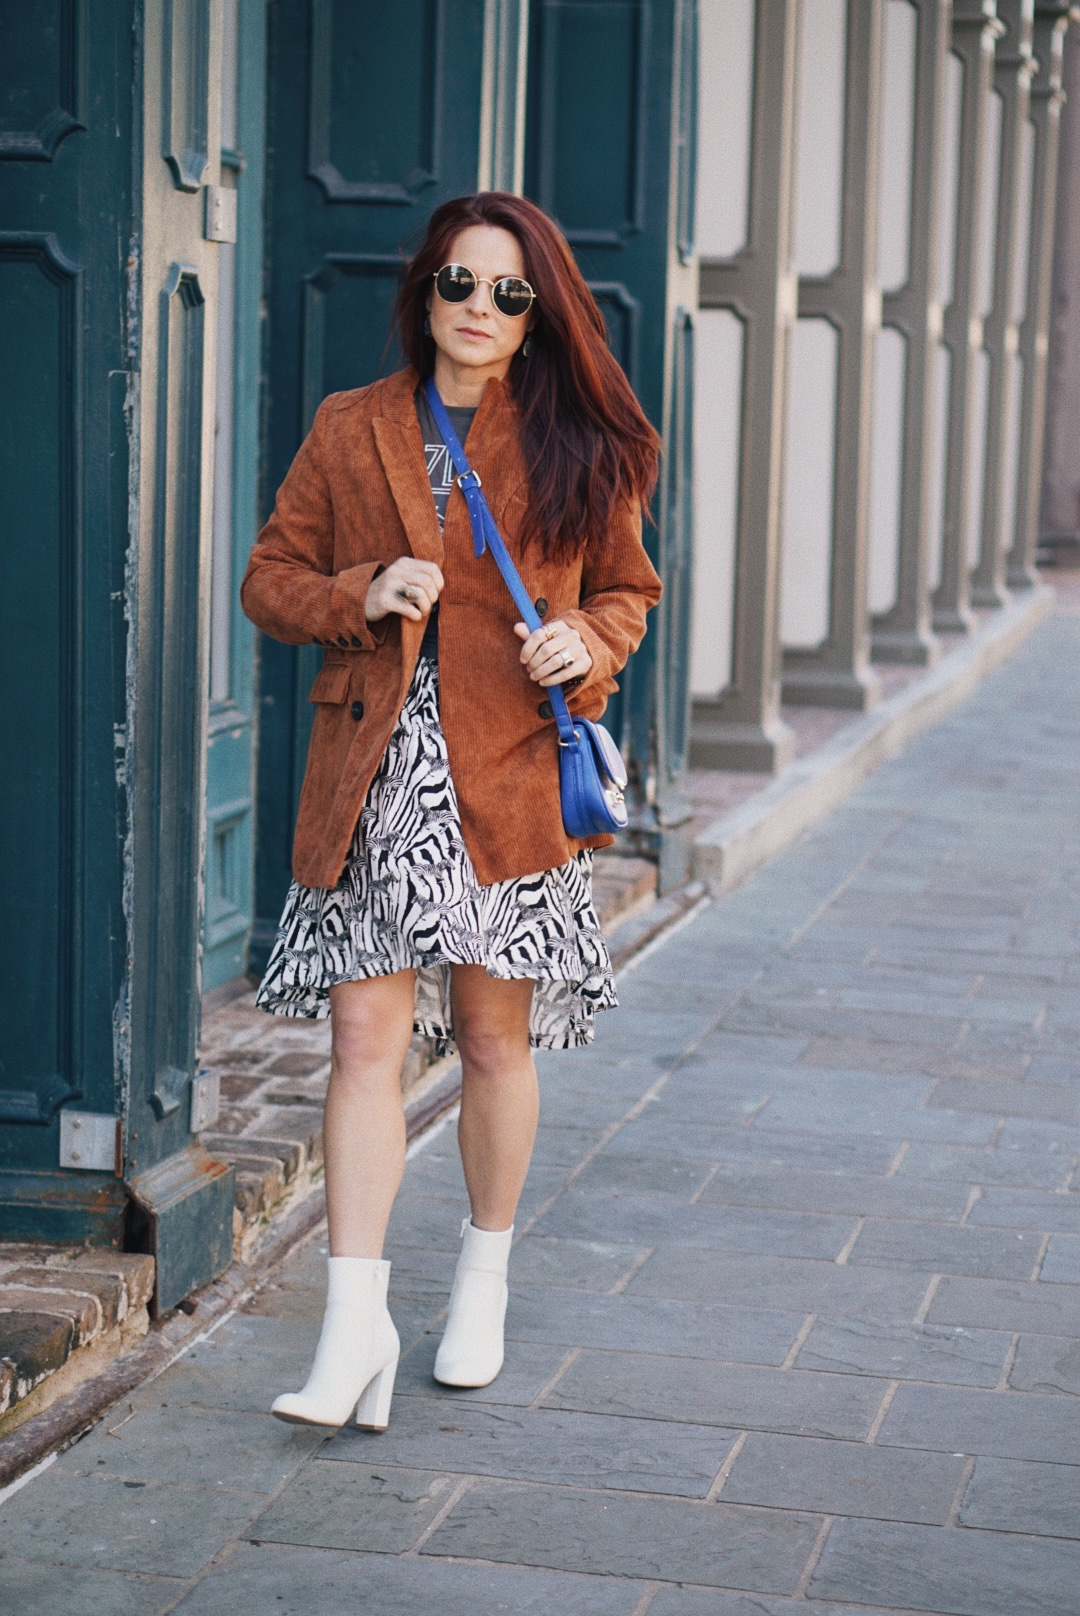 style inspiration, corduroy jackets, rust jacket, fall fashion, zebra print dress, cobalt blue bags, white boot outfits